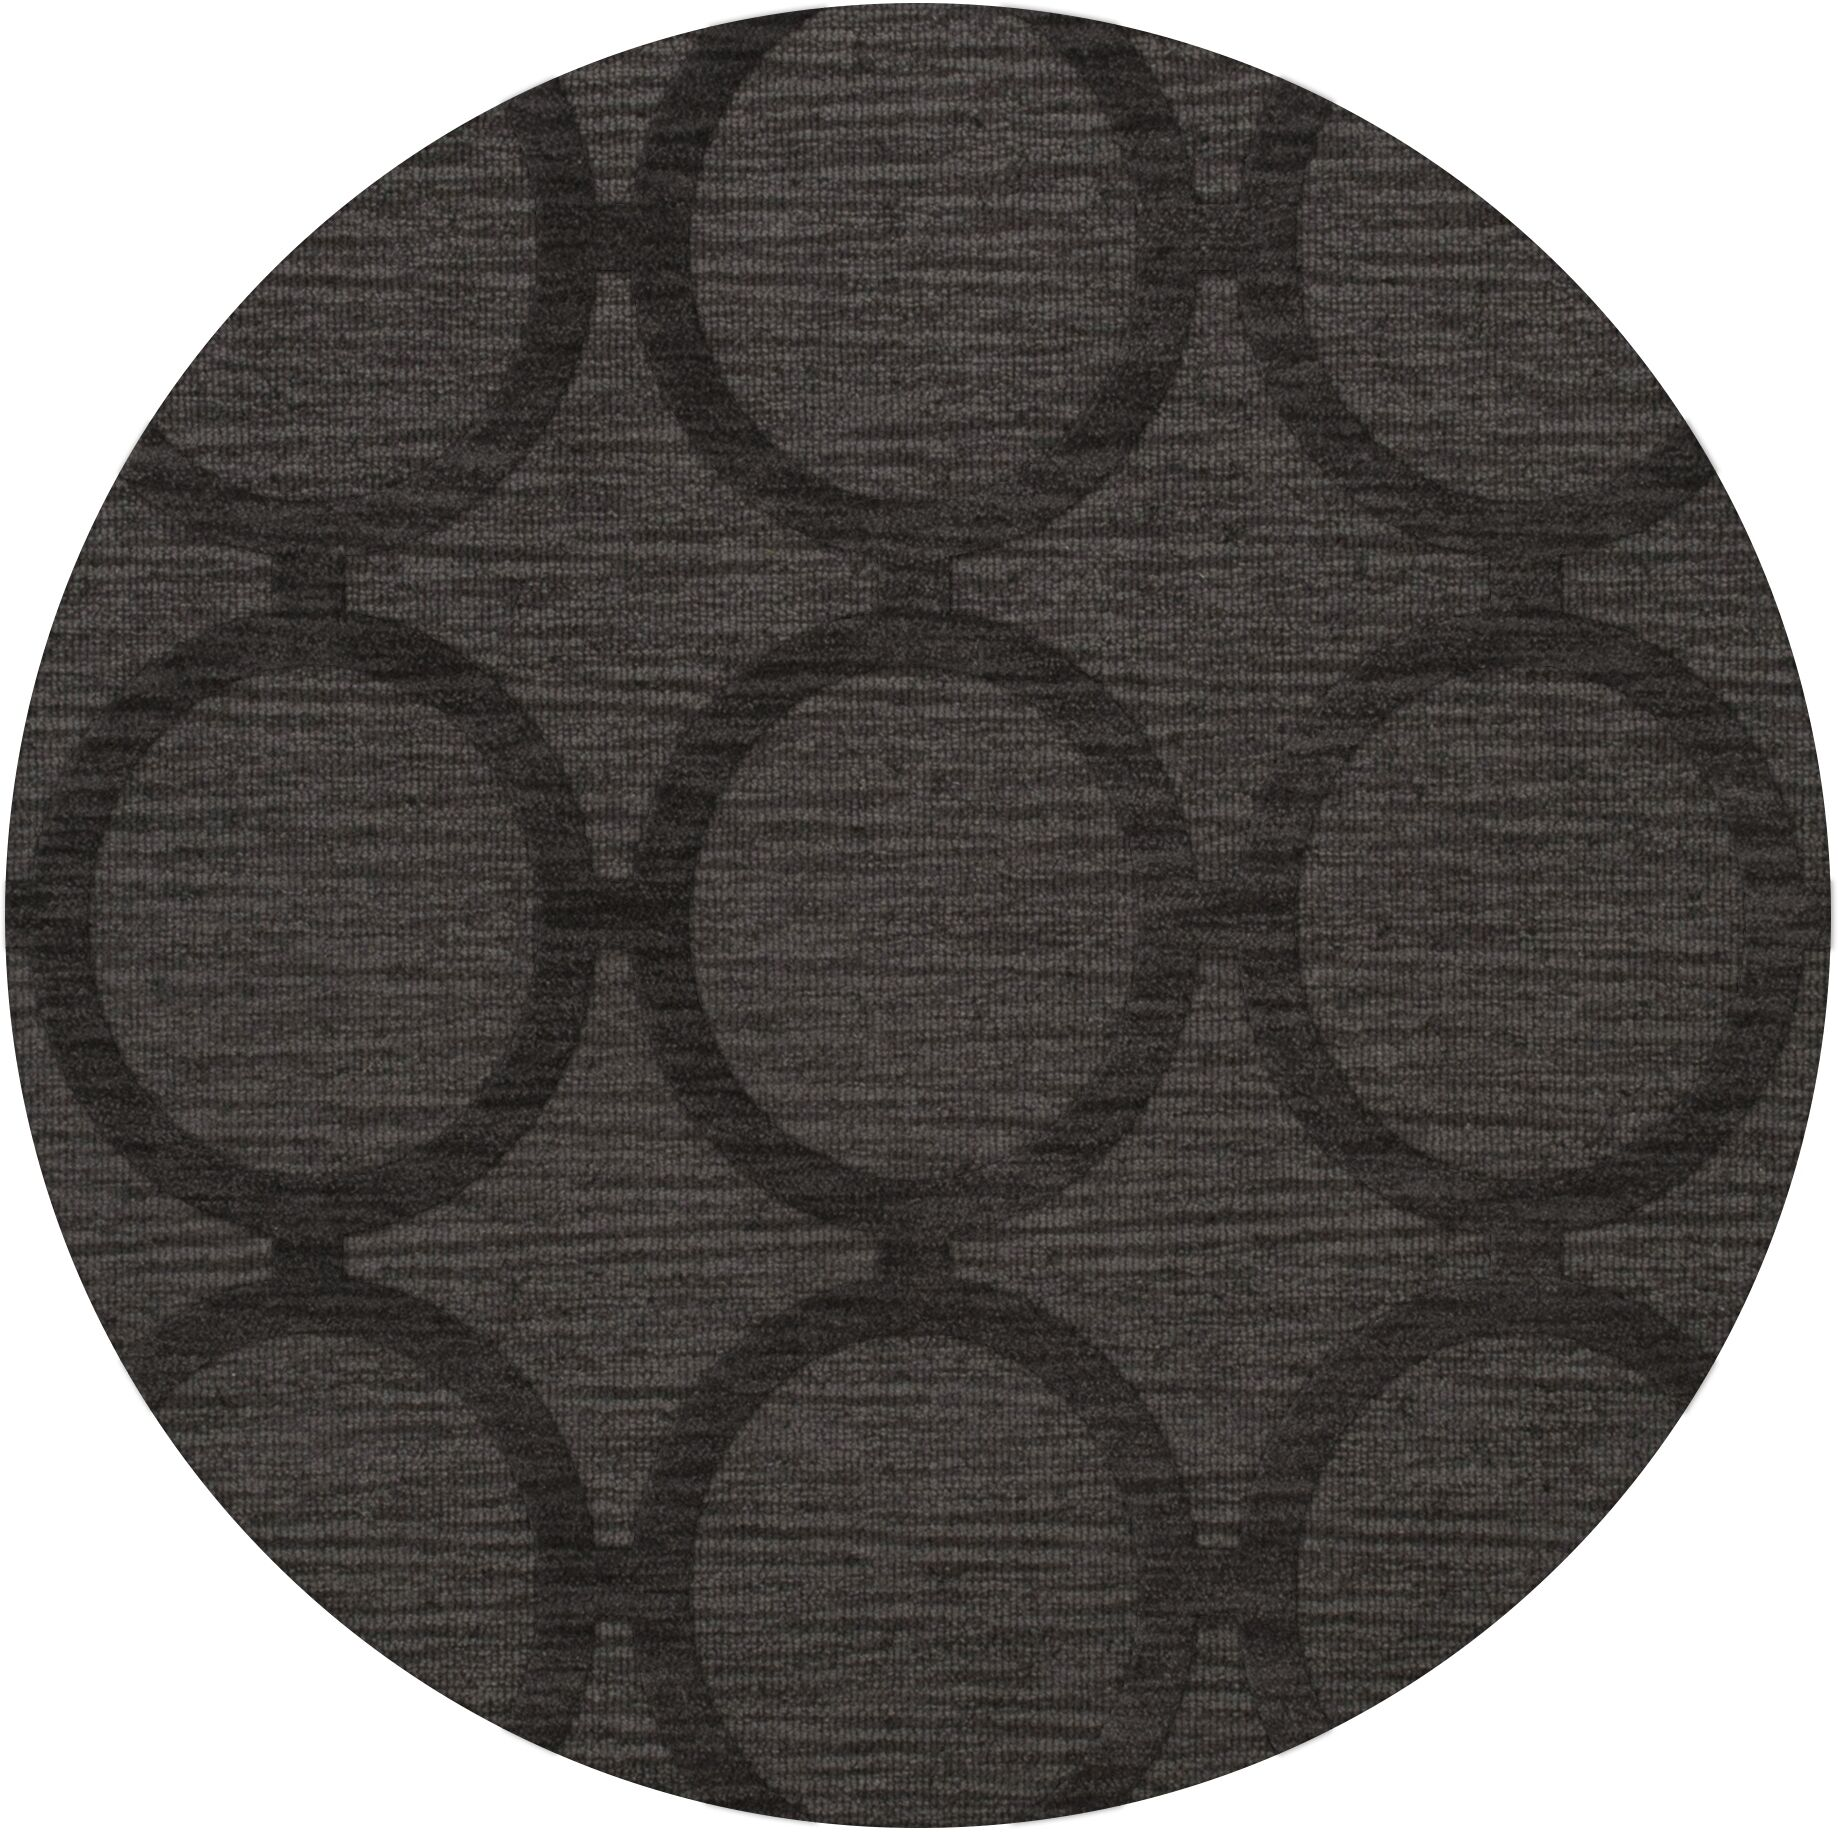 Dover Tufted Wool Ash Area Rug Rug Size: Round 6'